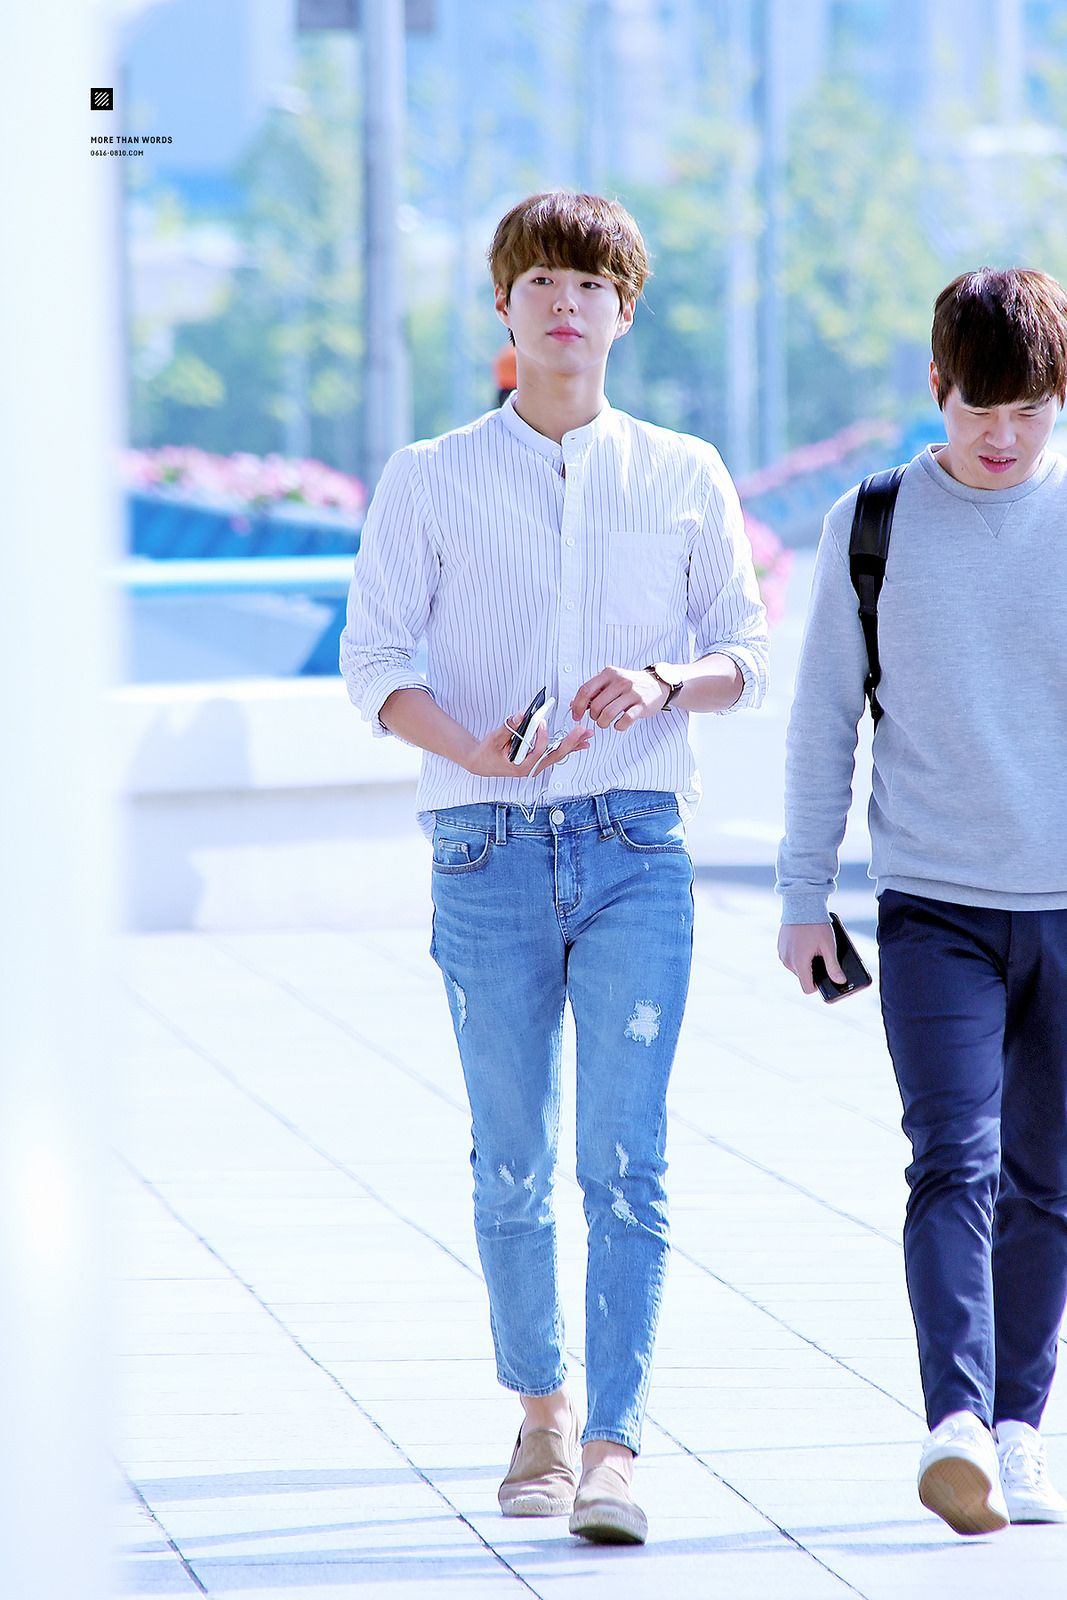 """c03d5483cbbf """"160514 ♡ gimpo airport (to beijing) more than words    do not edit or  remove watermark."""""""